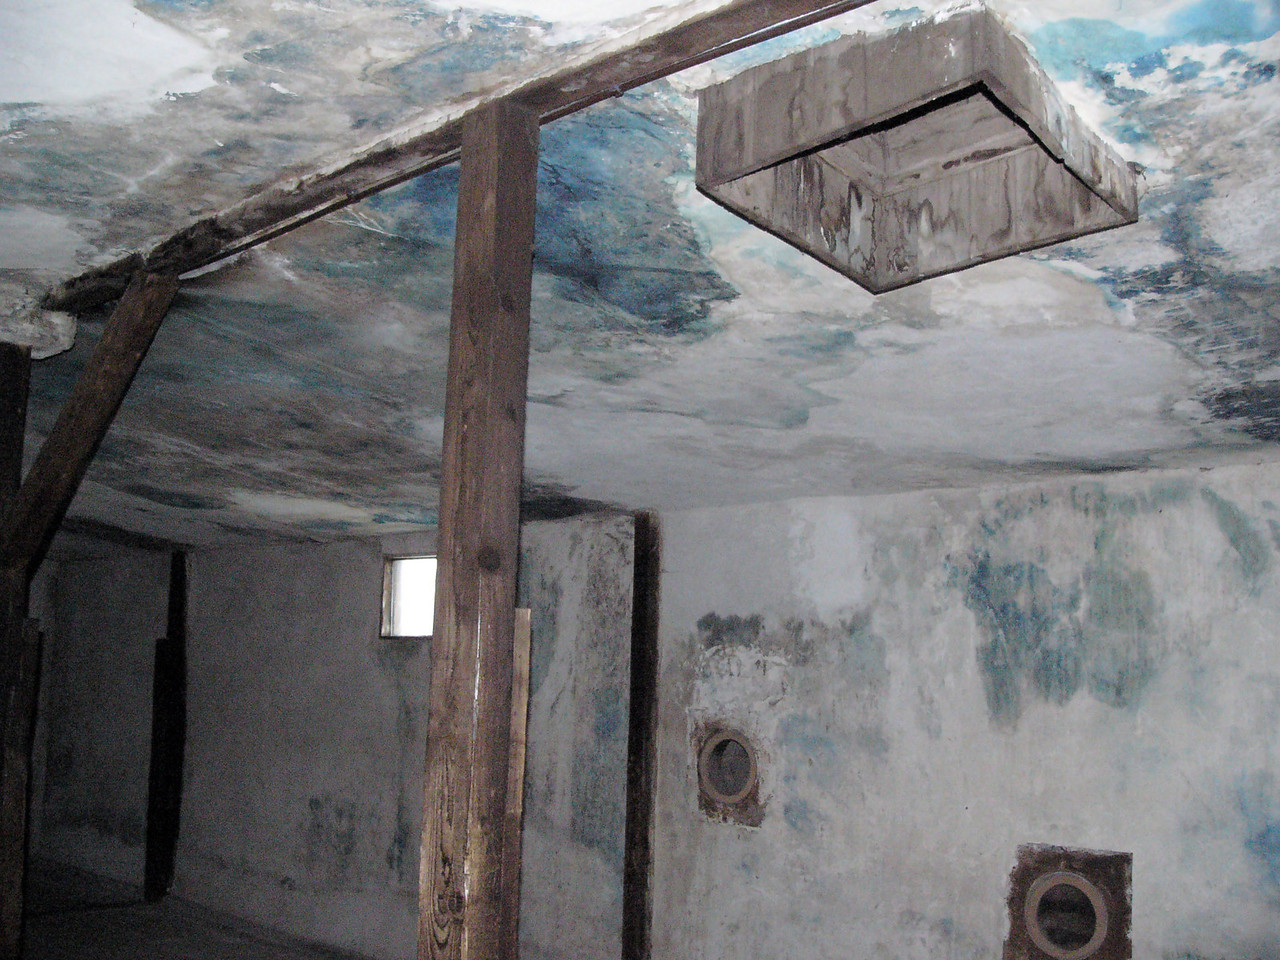 Gas chamber at Majdanek - port in ceiling for zyklon B gas pellets